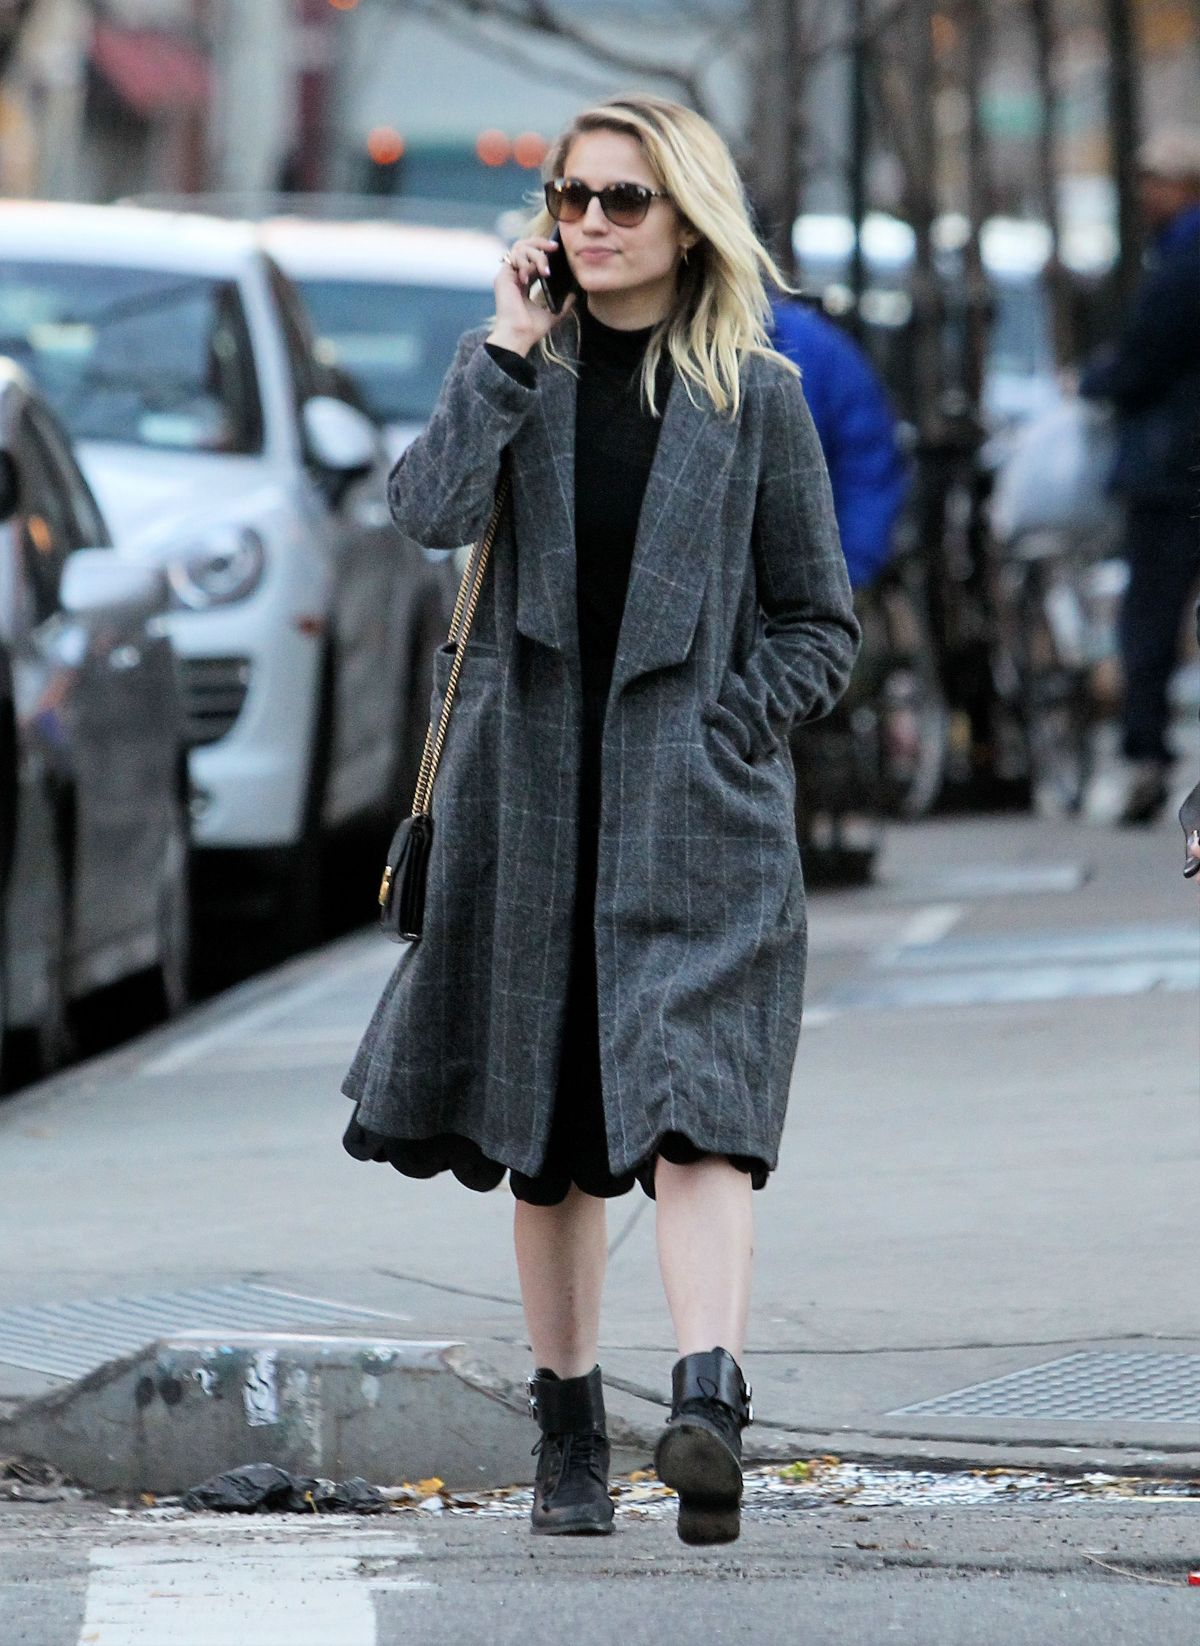 Dianna agron out in new york city naked (22 photo)